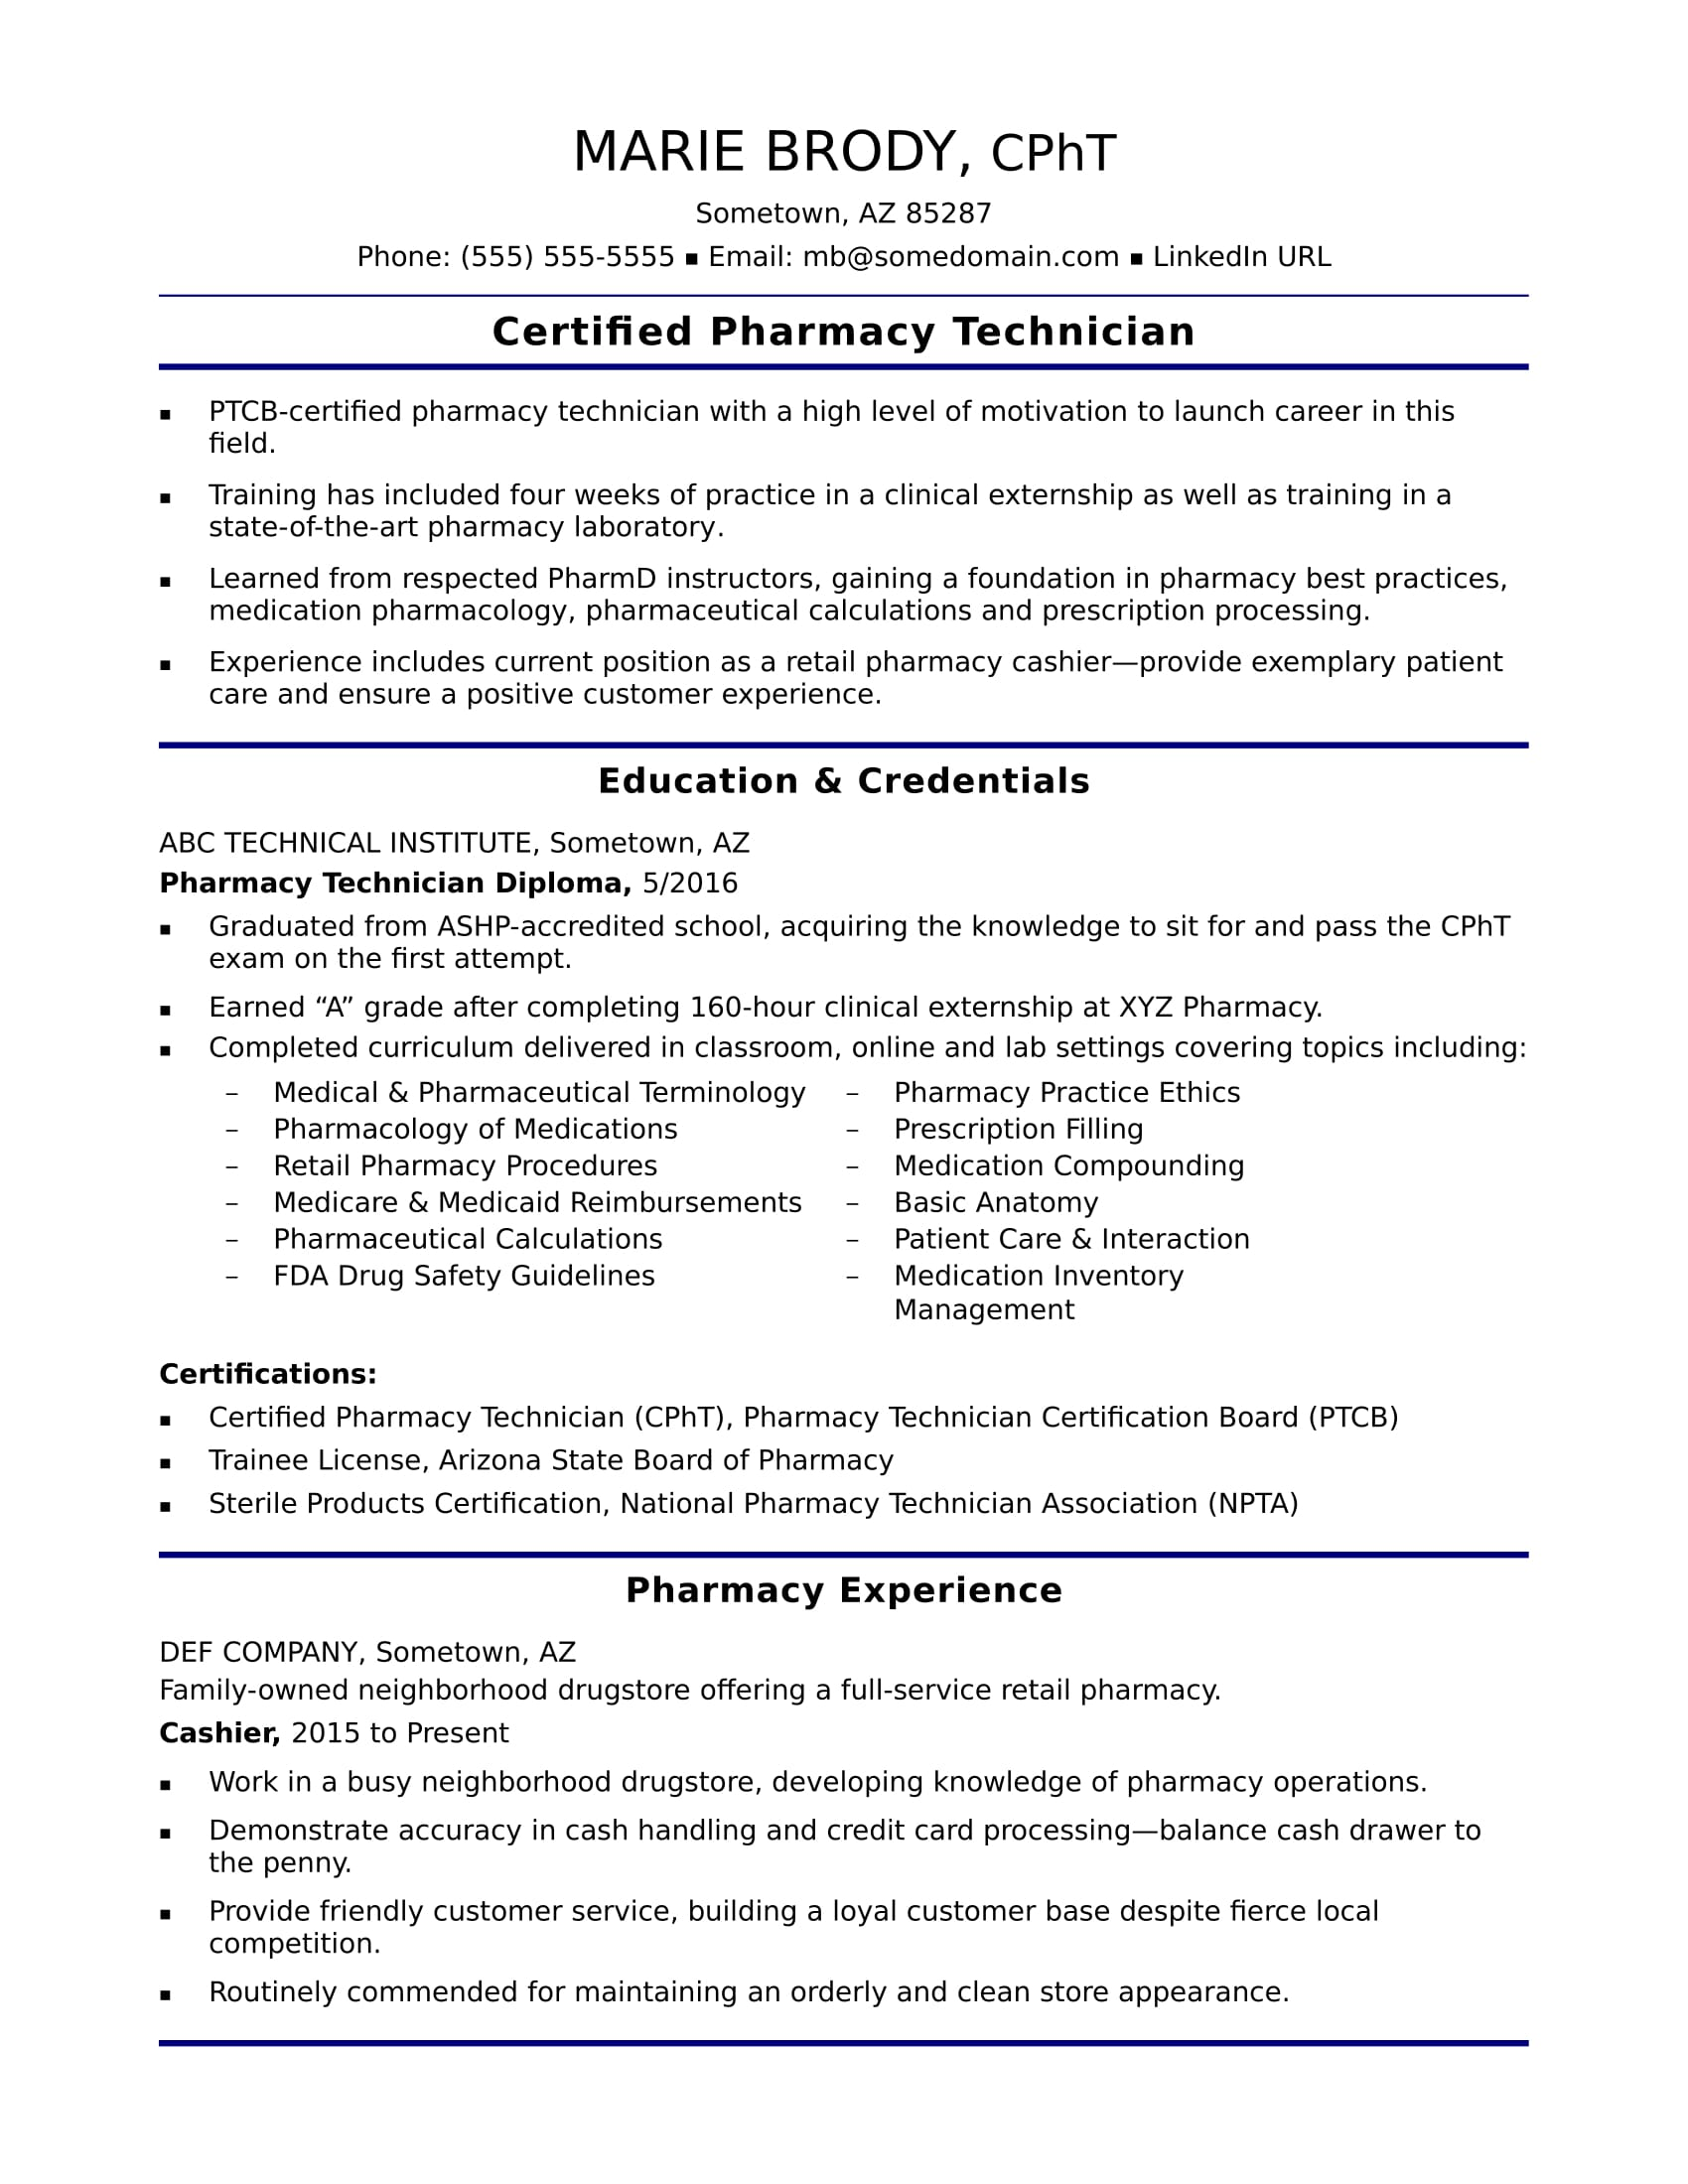 Sample Resume For An Entry Level Pharmacy Technician  Entry Level Retail Resume